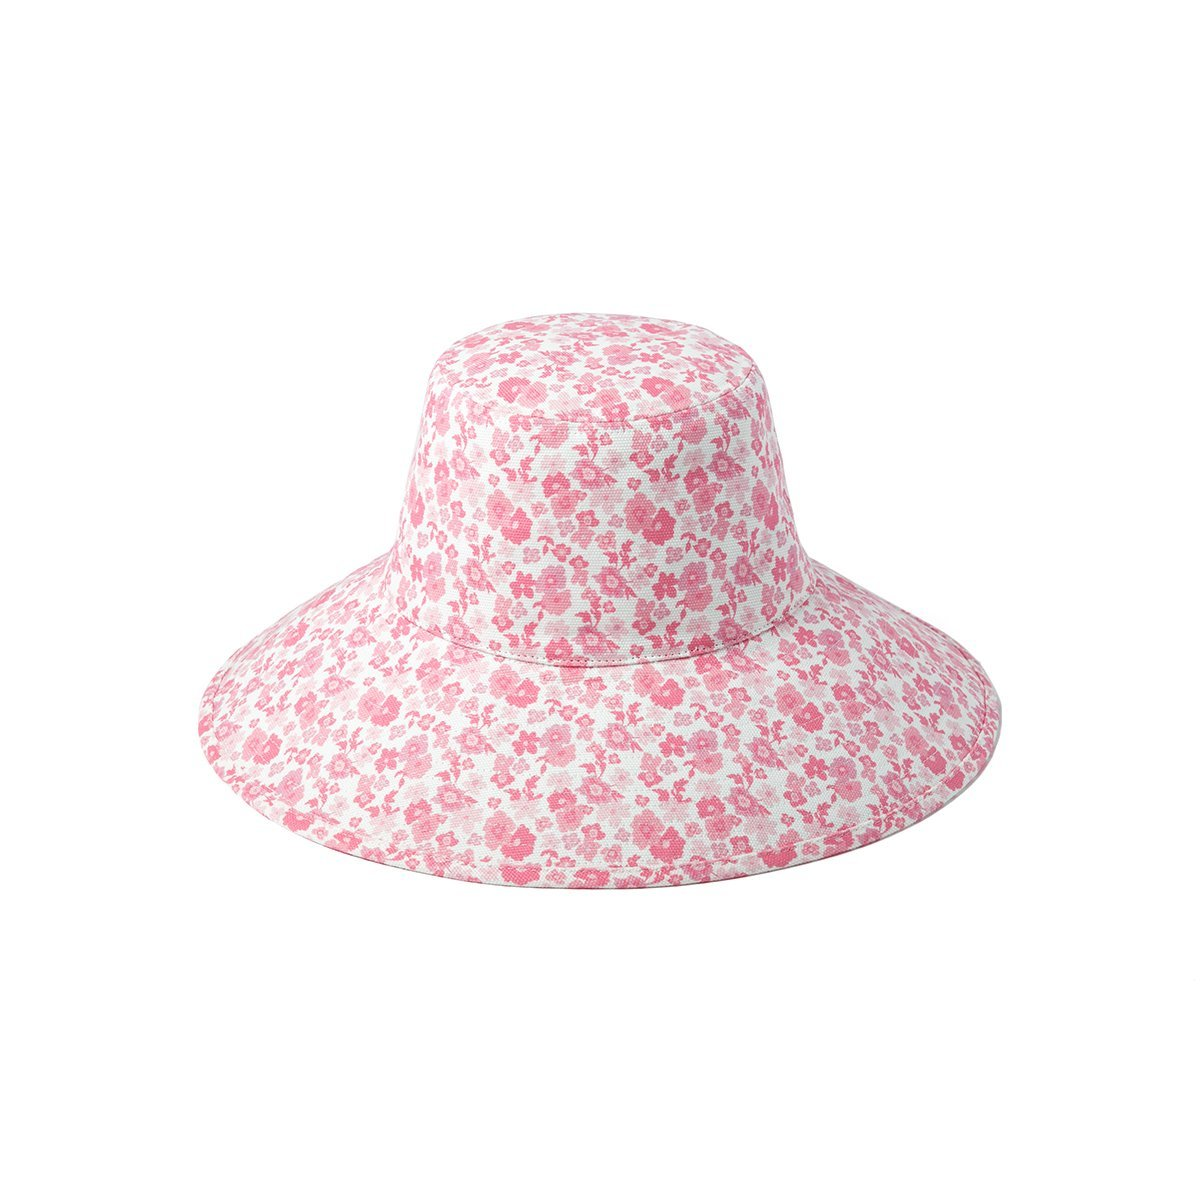 by Lack of Color, available on lackofcolor.com for $119 Elsa Hosk Hat Exact Product